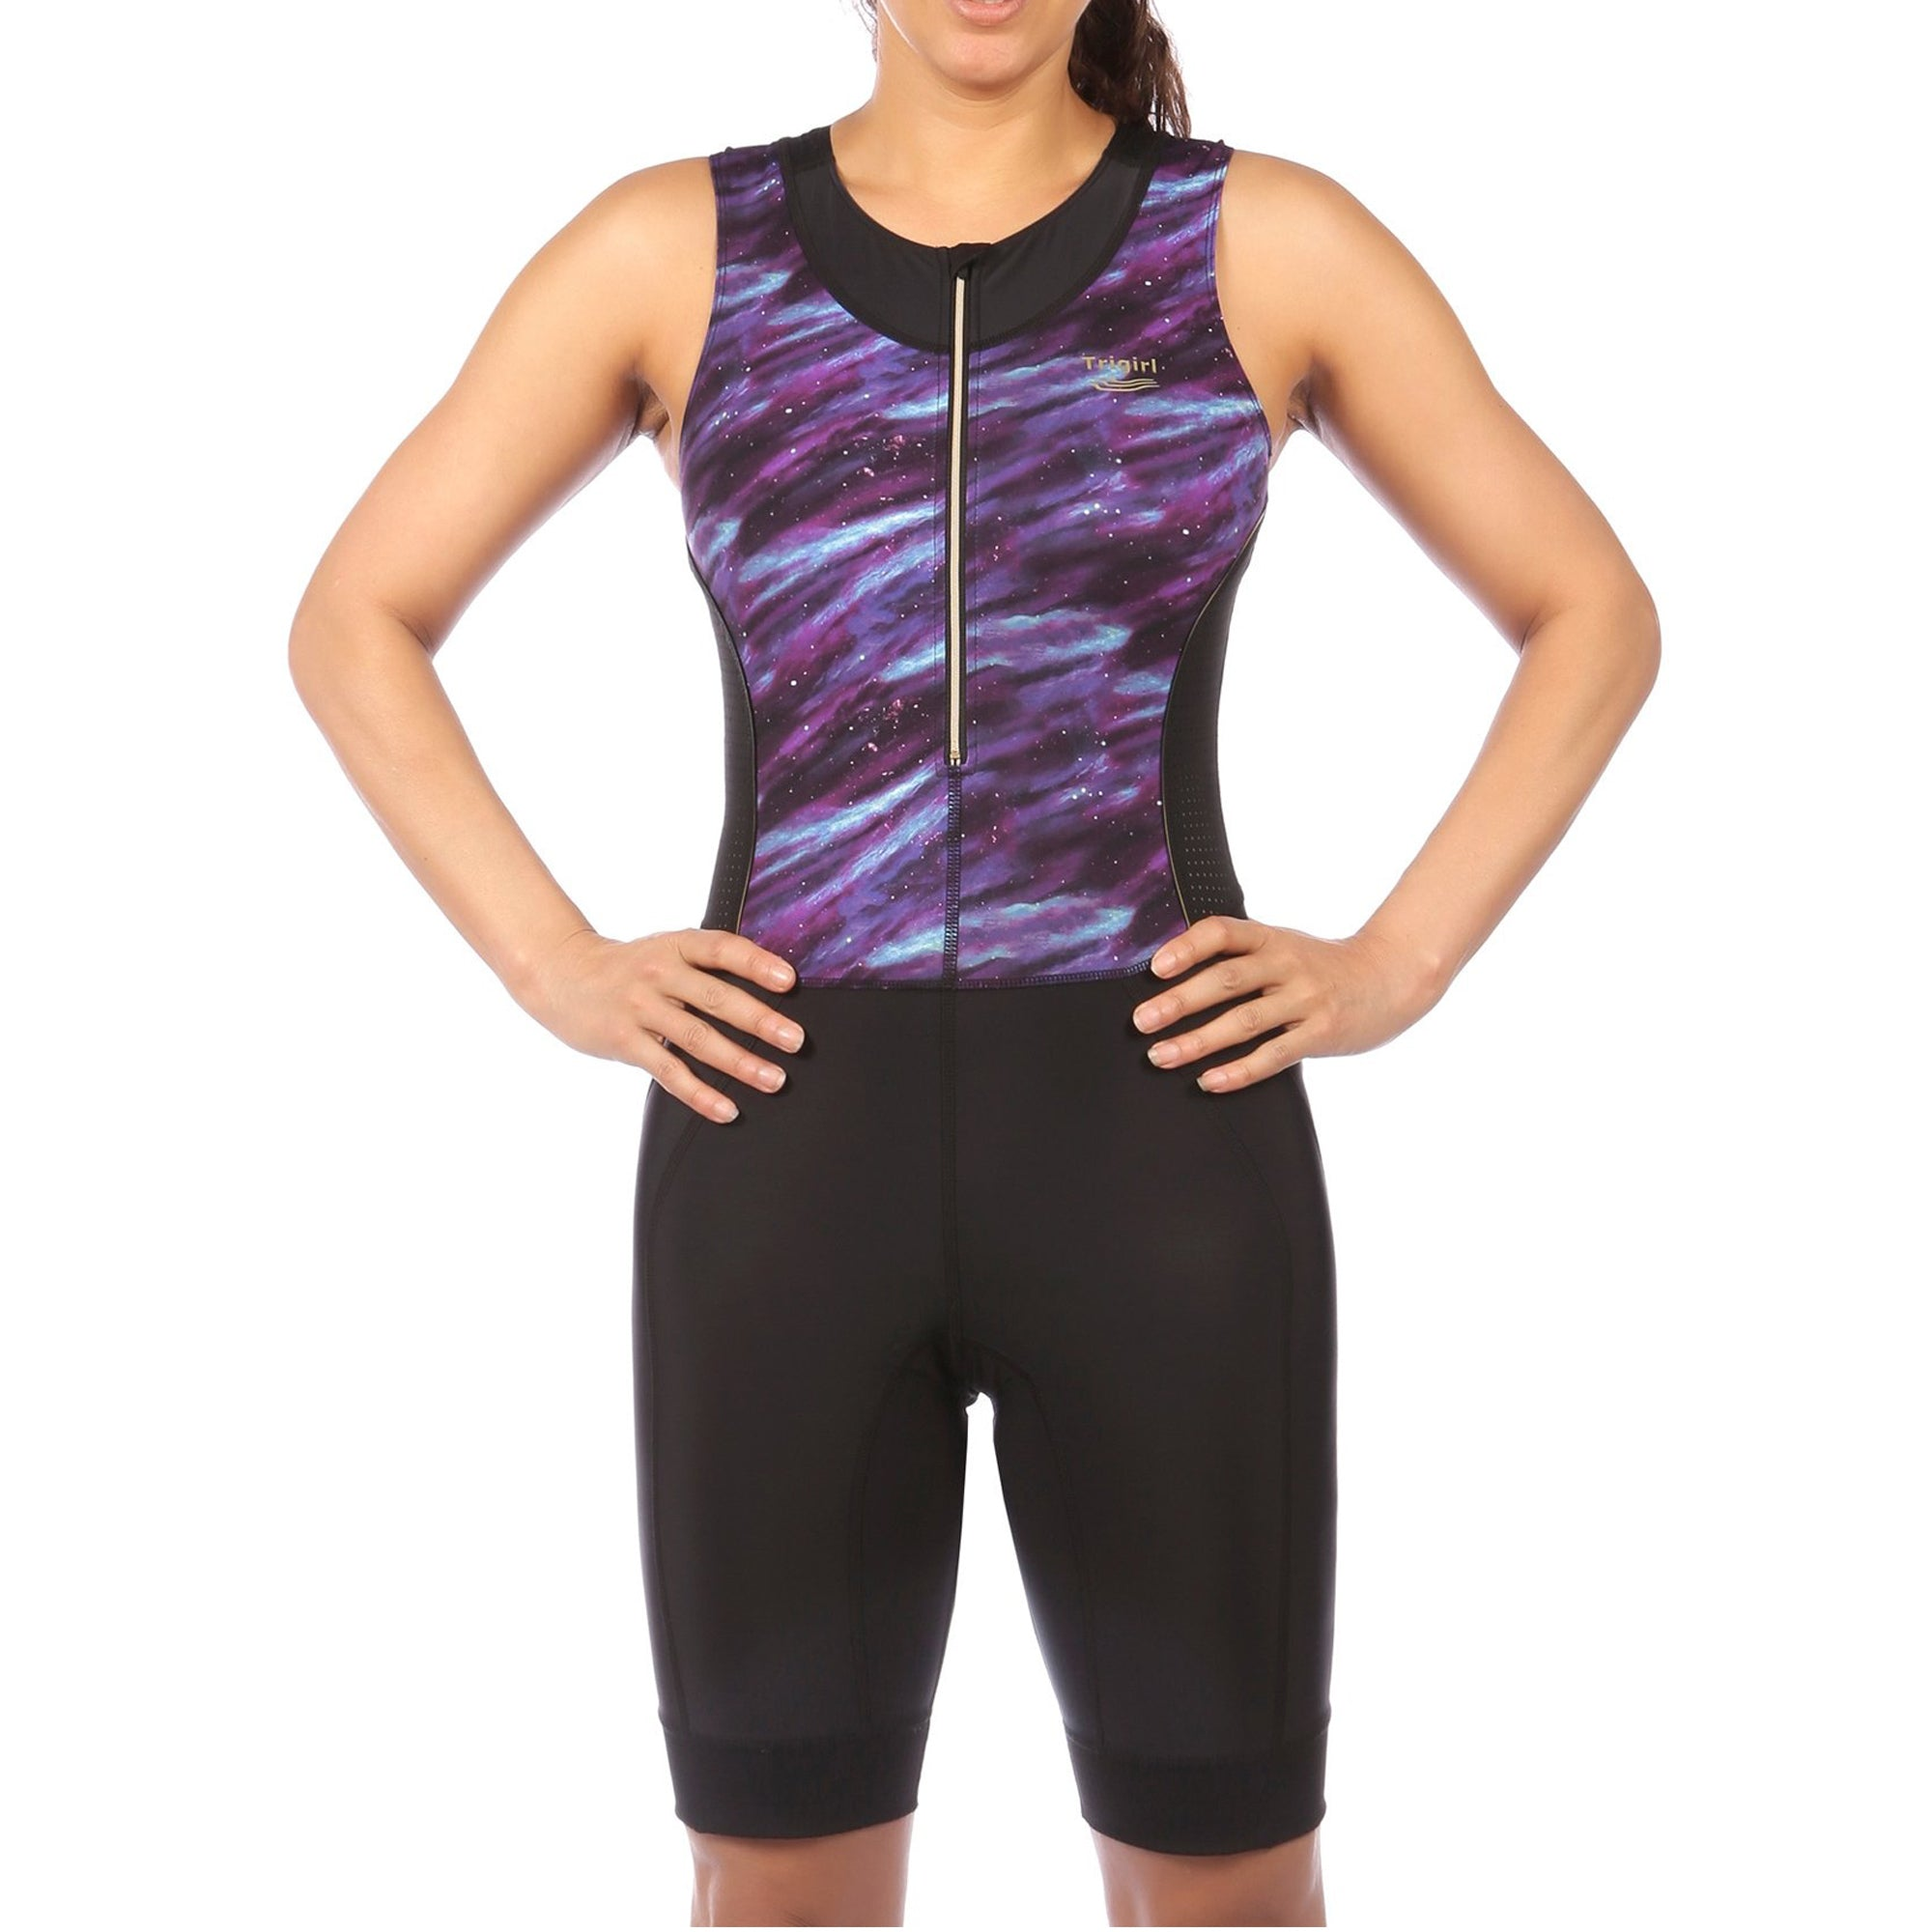 Tri Suit with Bra Support - Trigirl Galaxy